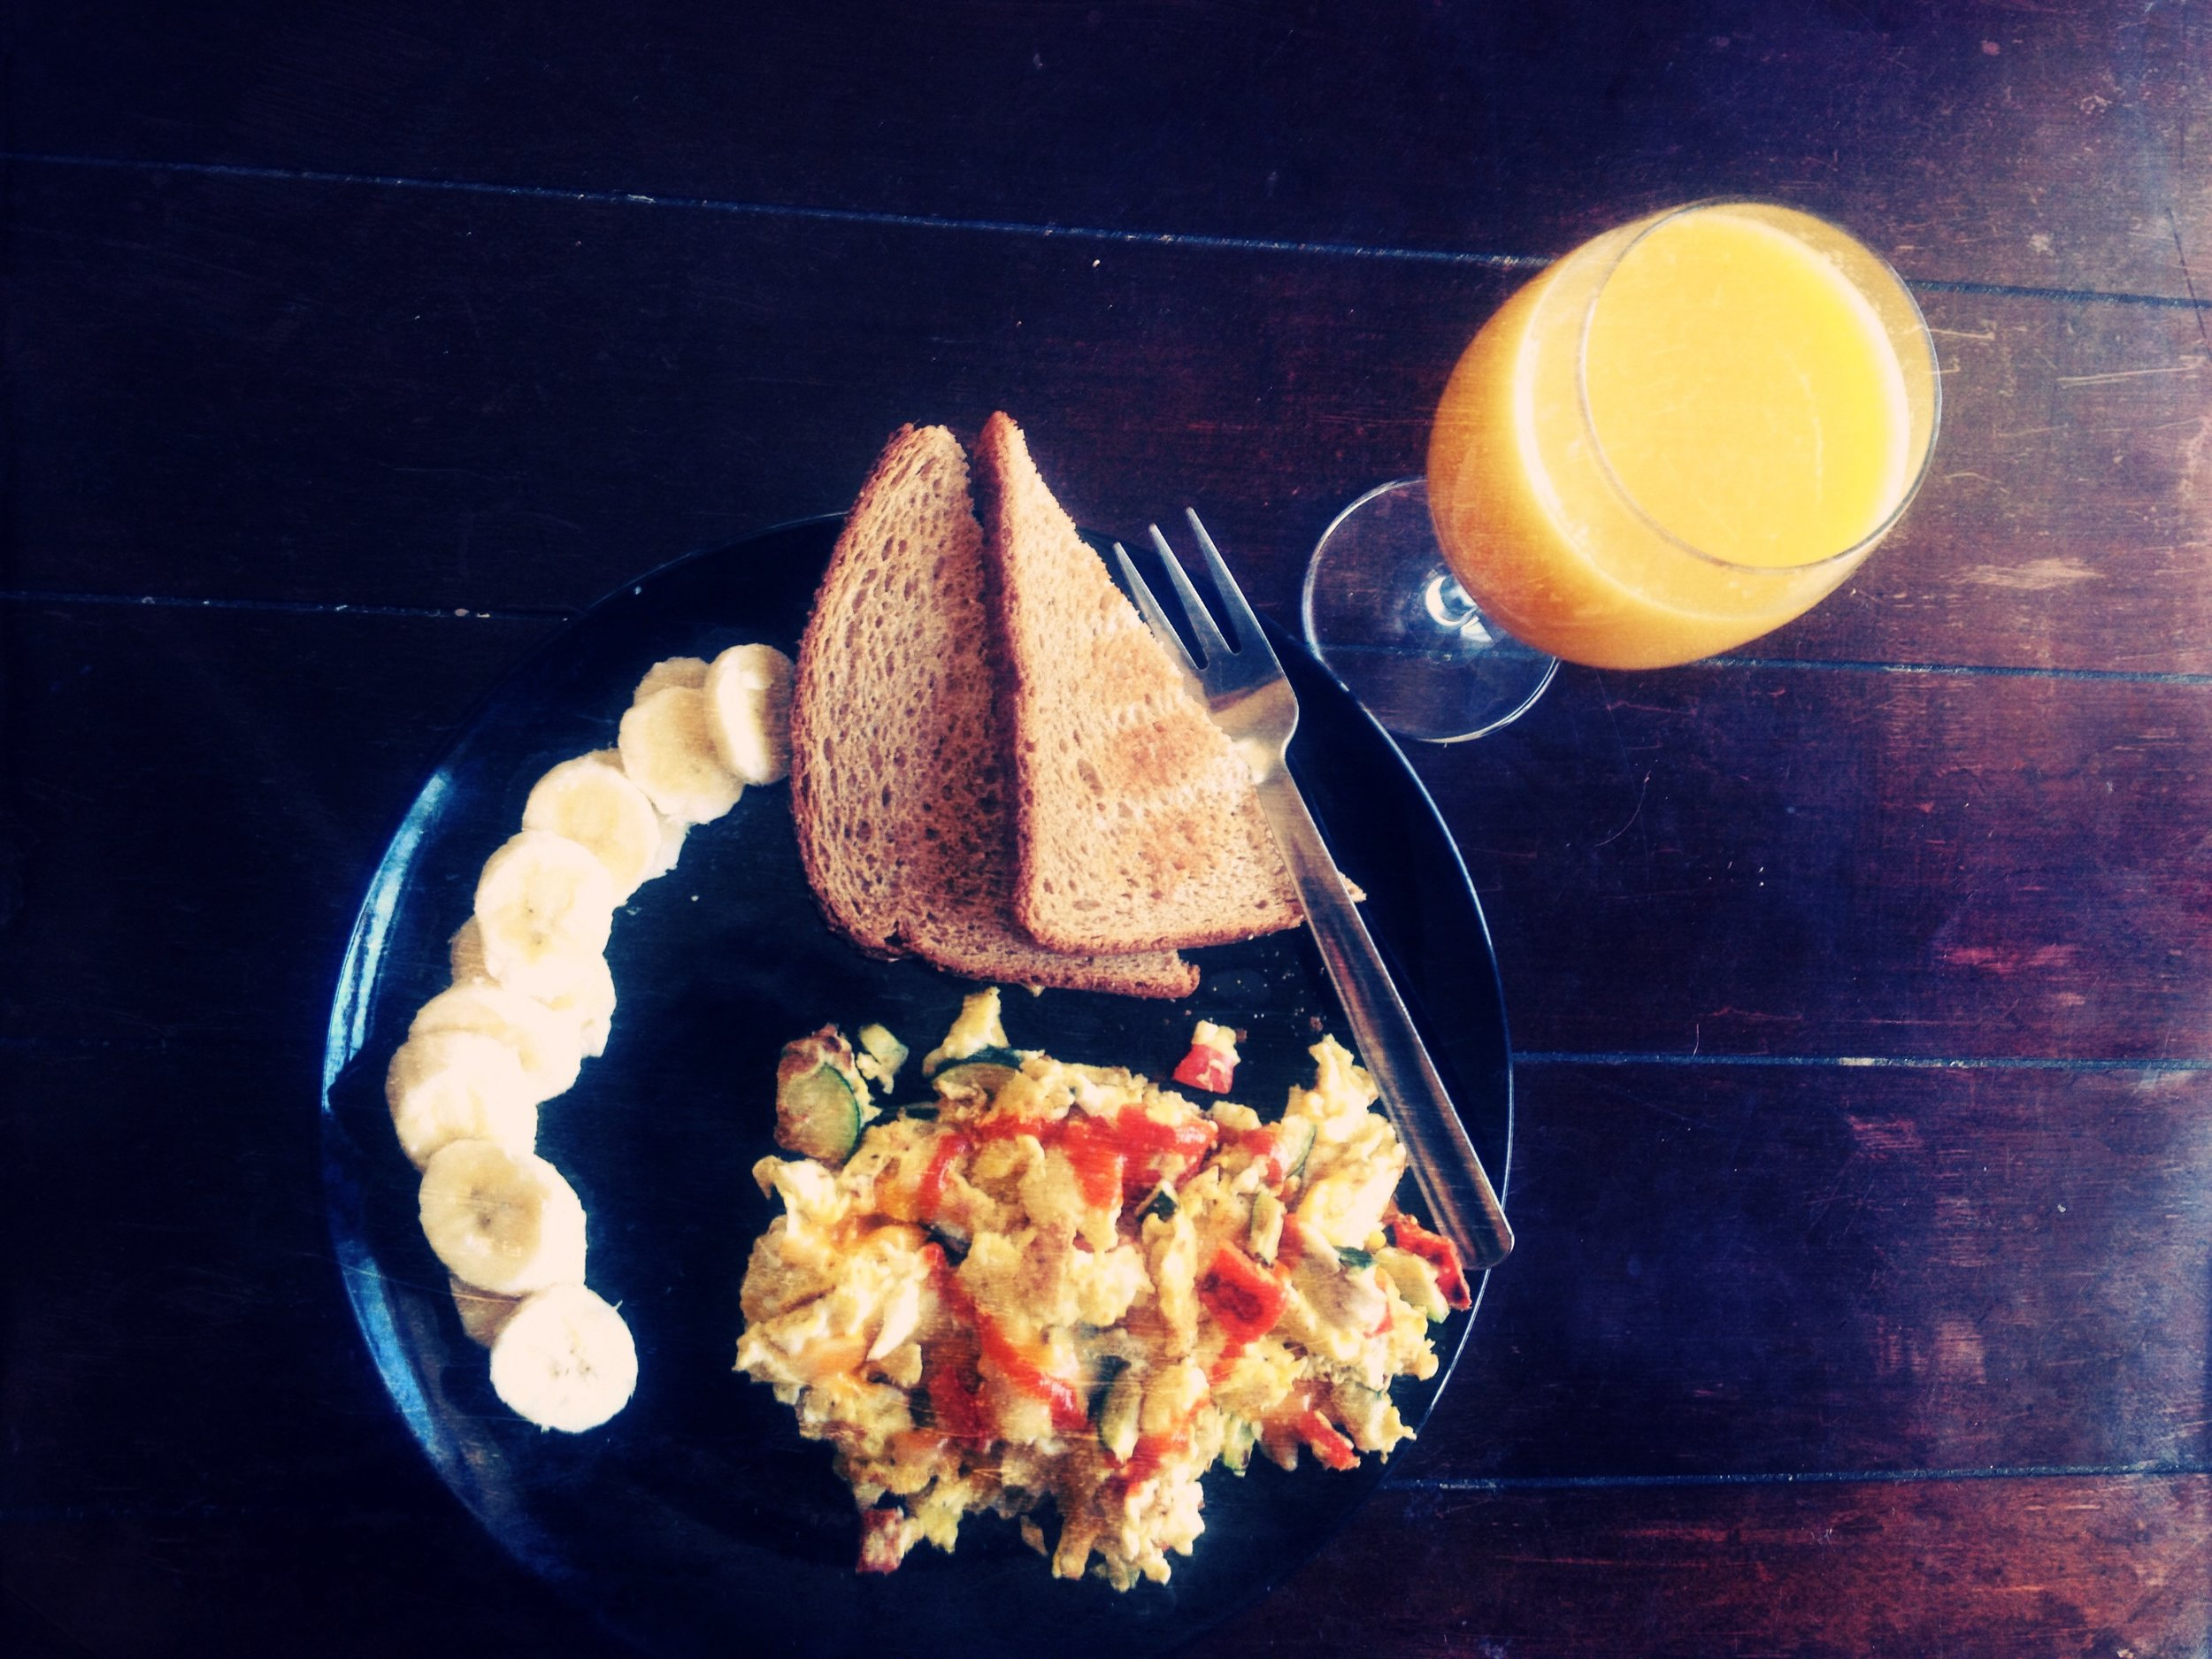 Homemade breakfast complete with a Sriracha heart on my eggs!